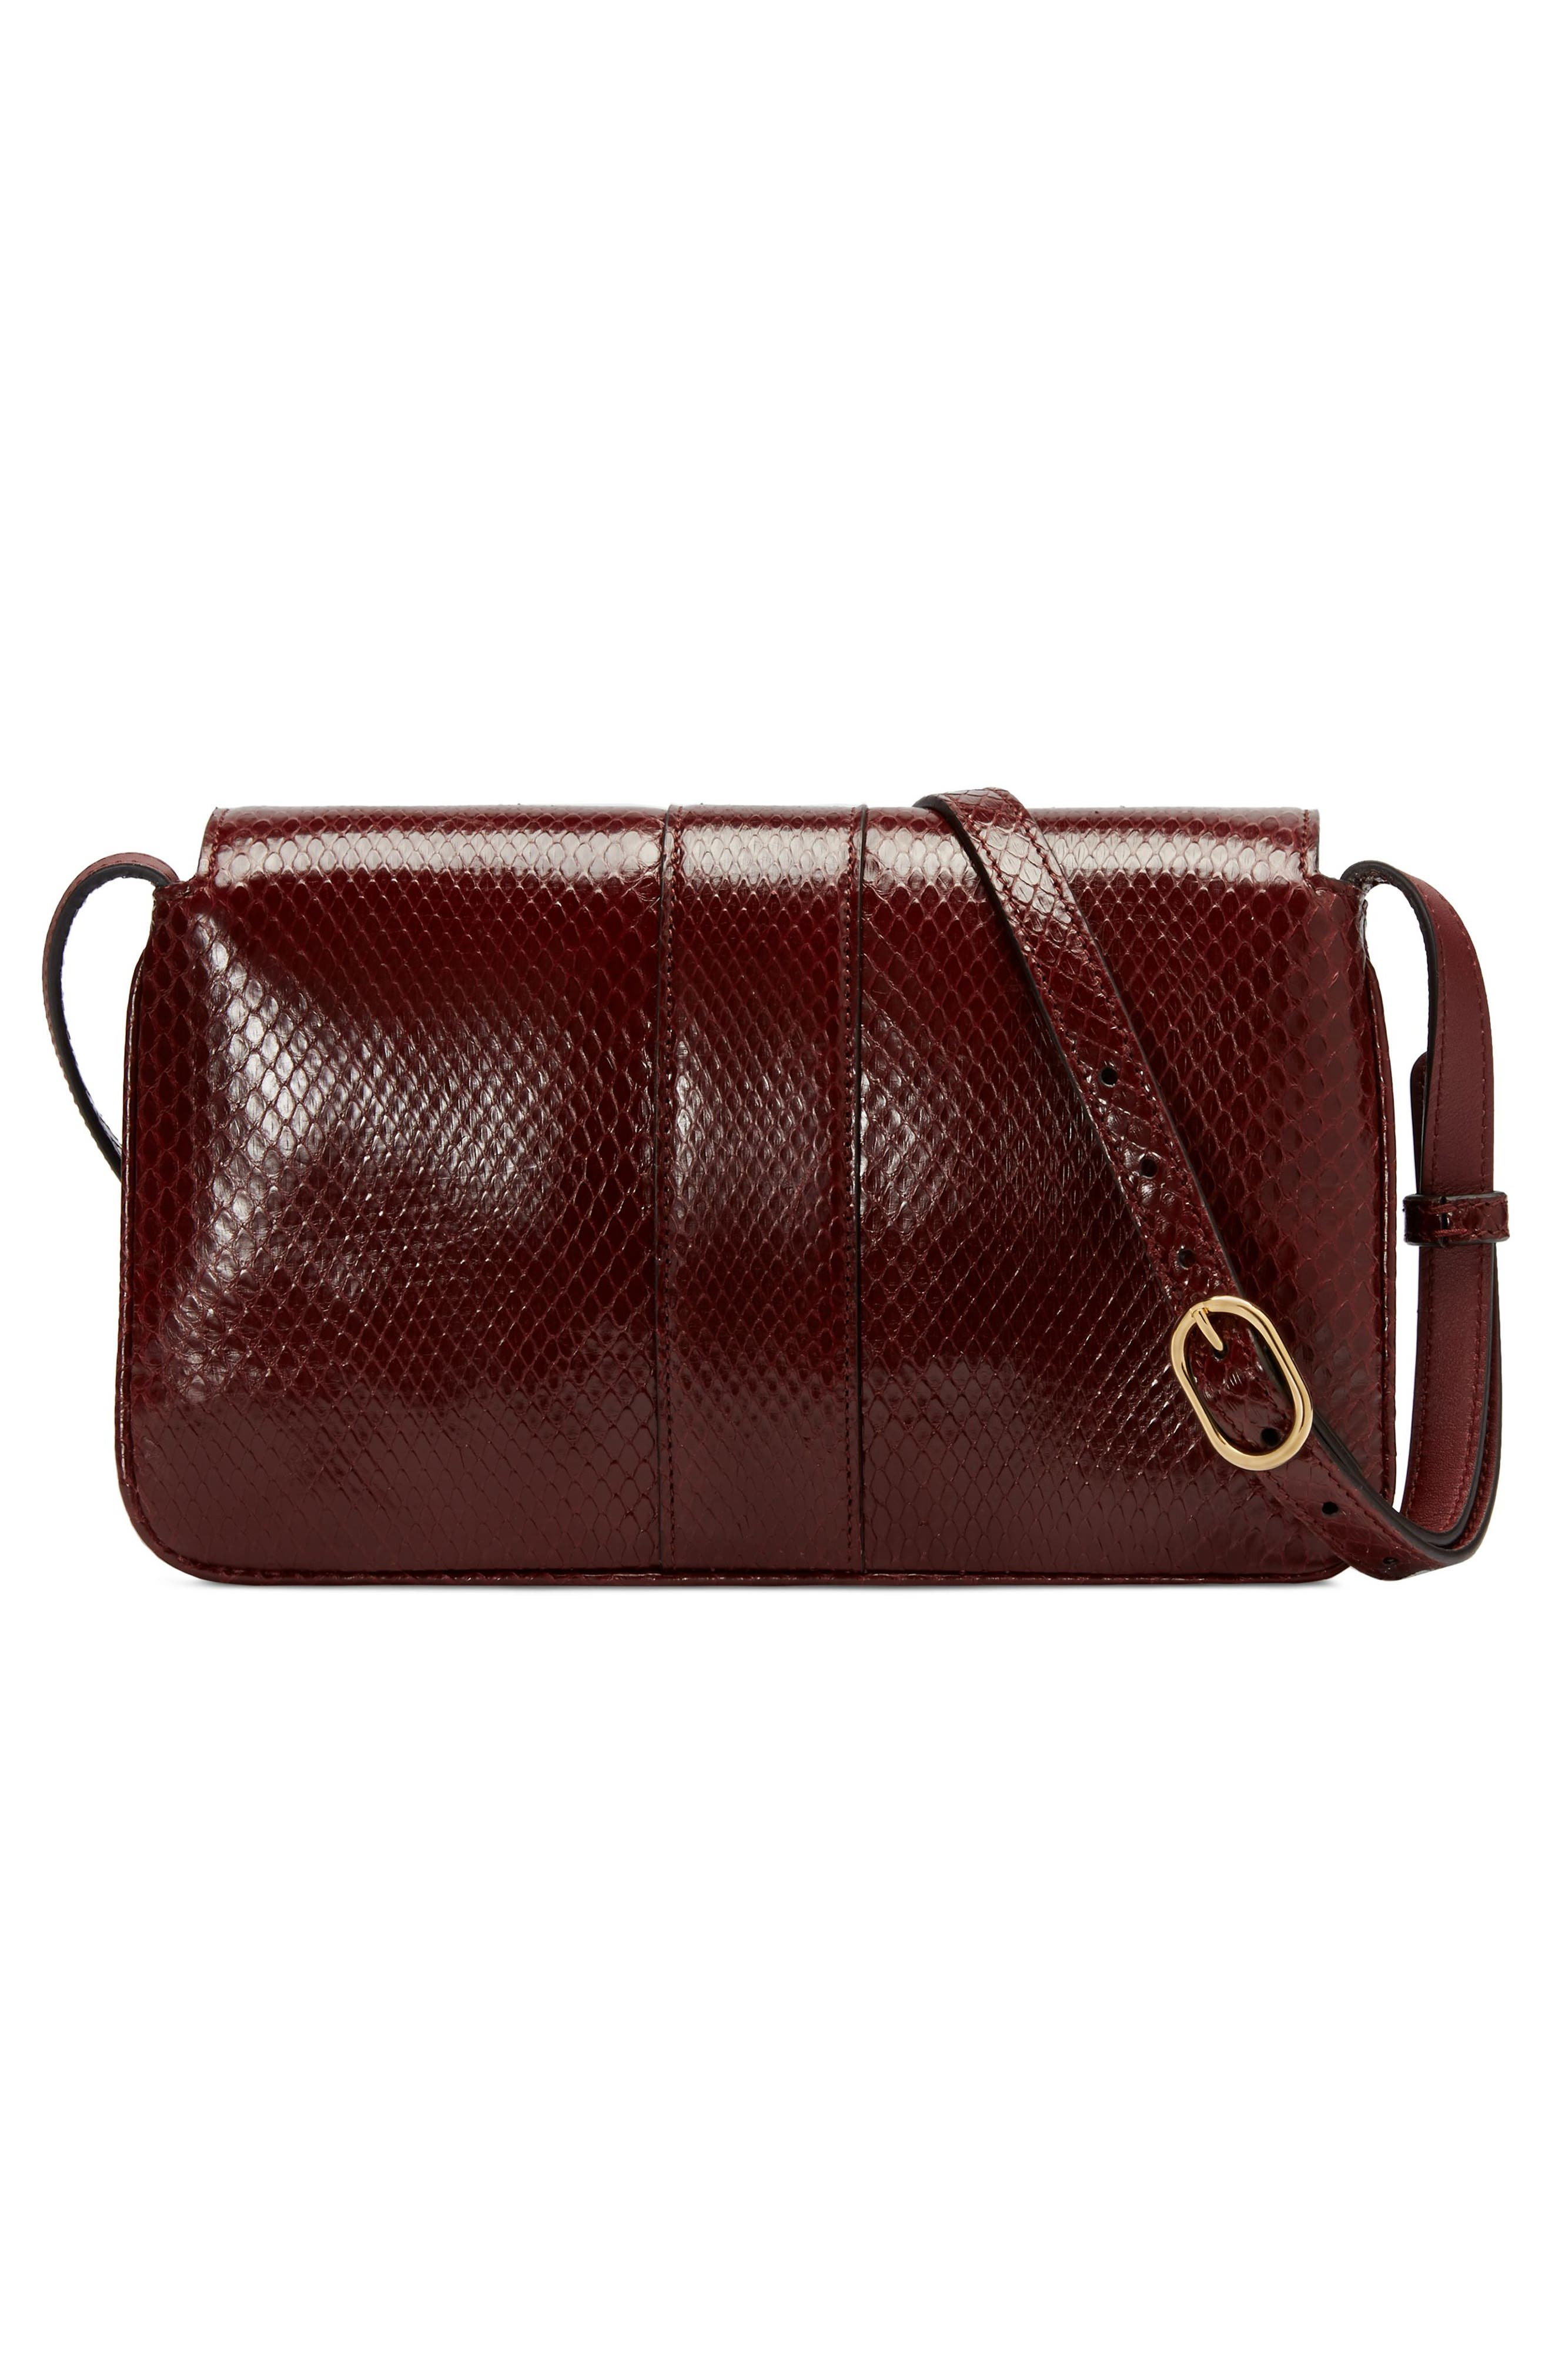 Running Genuine Python Small Shoulder Bag,                             Alternate thumbnail 2, color,                             VINTAGE BORDEAUX